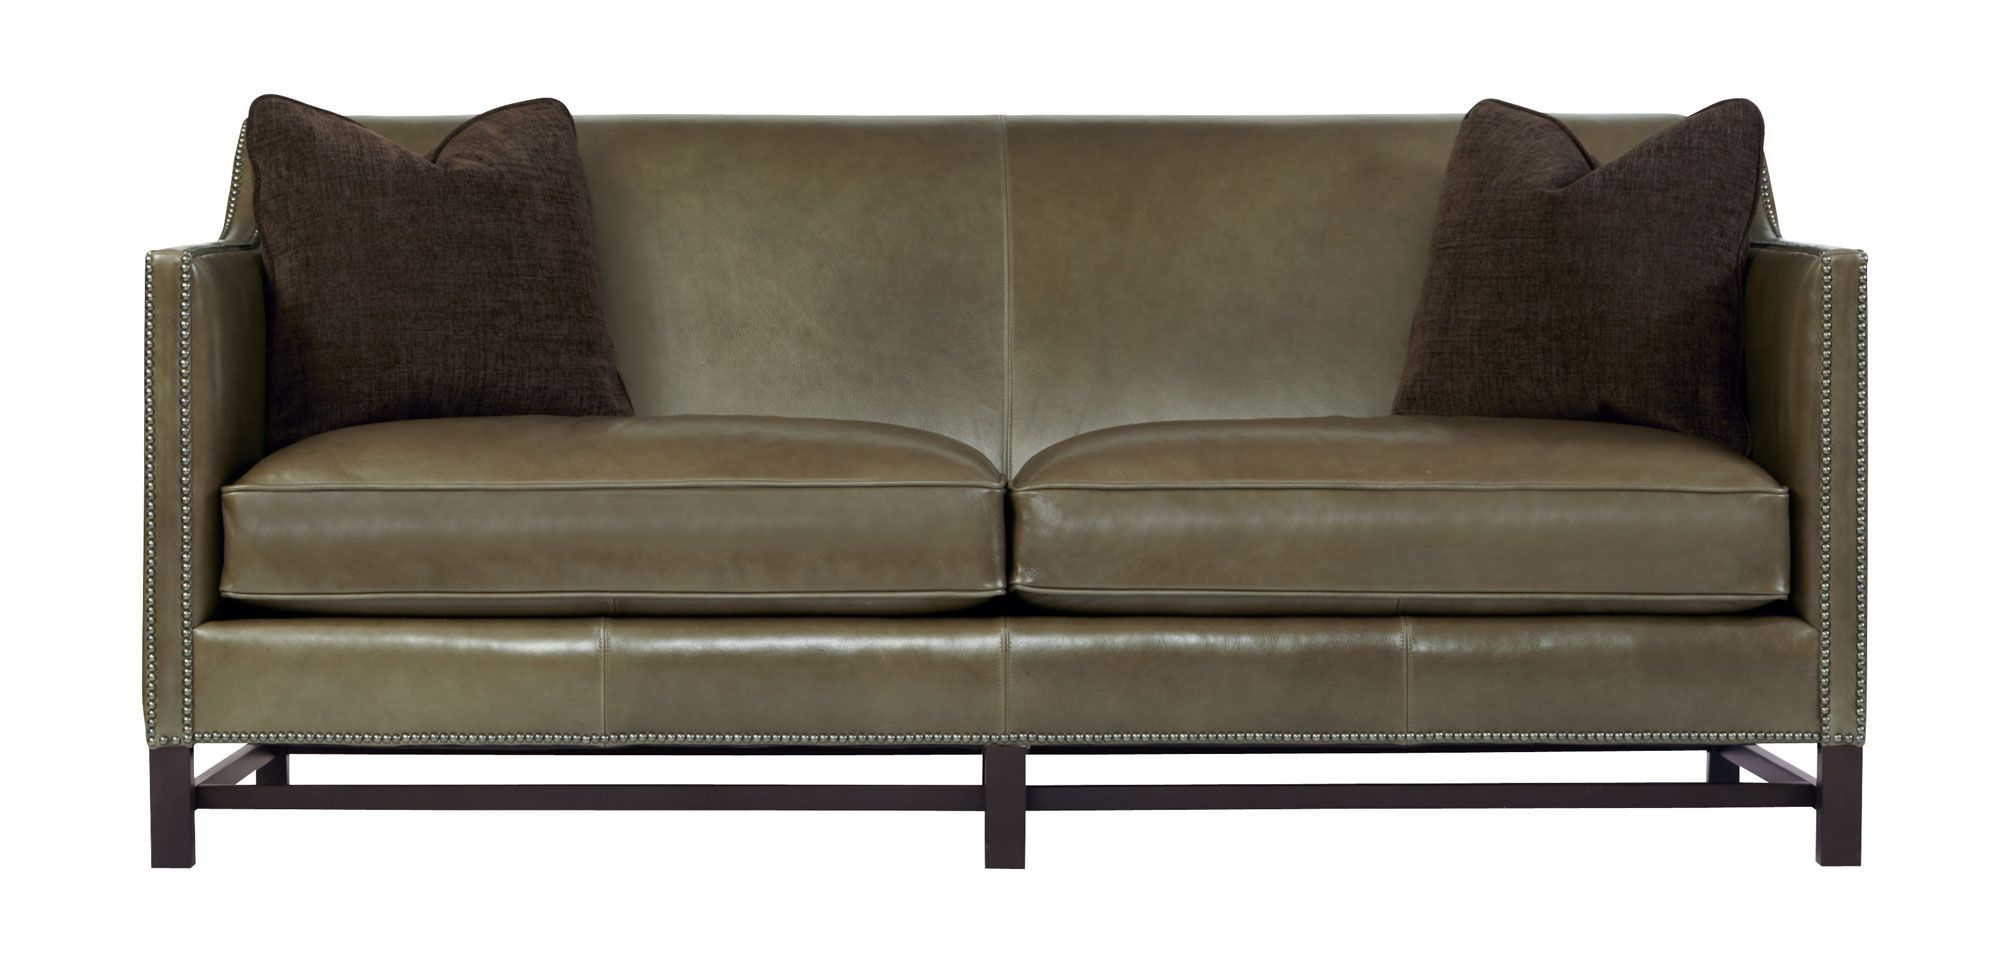 Bernhardt chatham sofa furniture elegant living room design with gray thesofa Bernhardt living room furniture